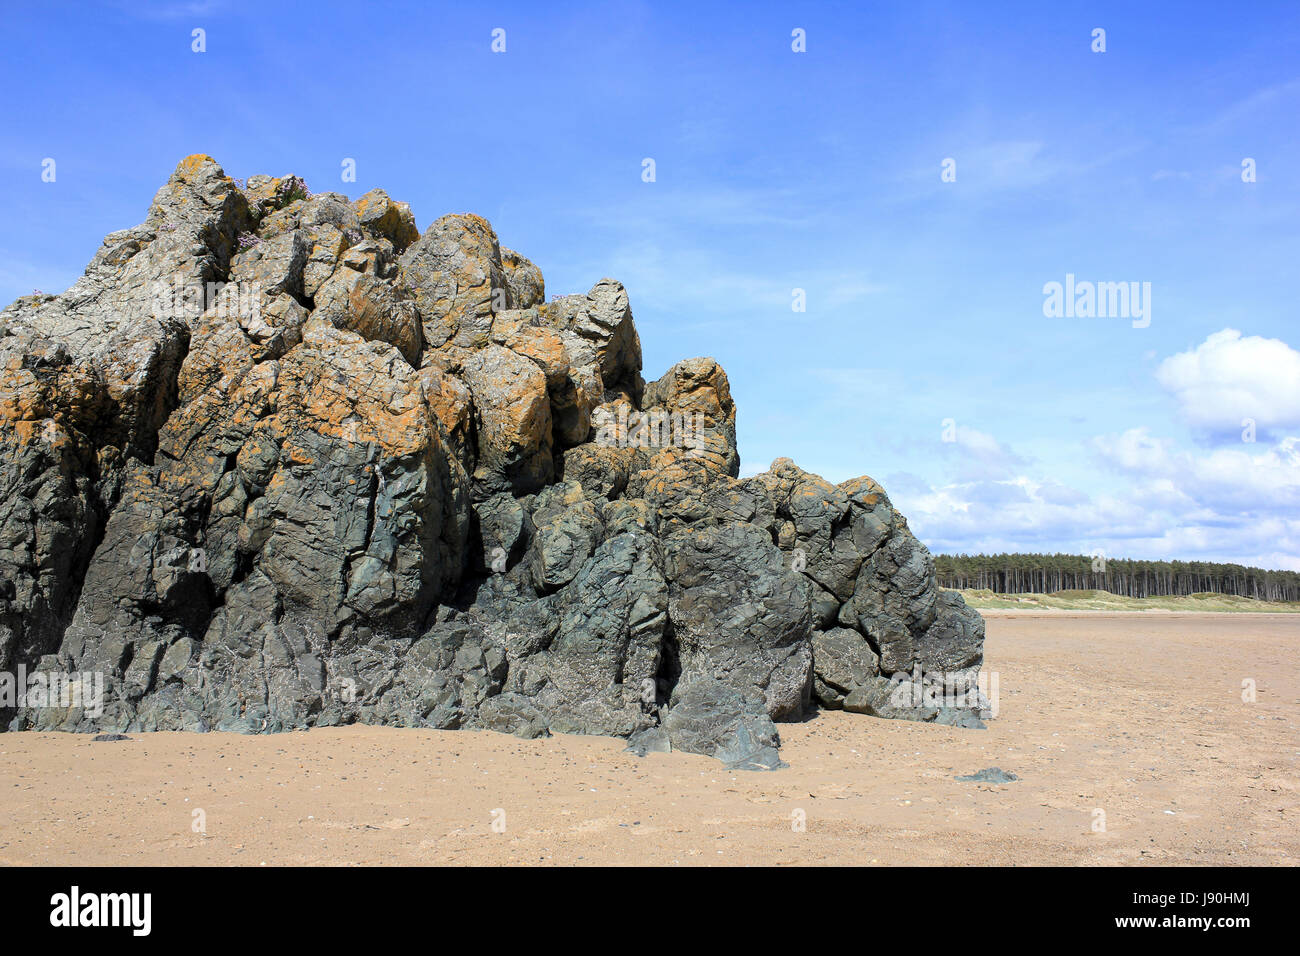 Pillow Lava On Llandwyn Island, Anglesey, Wales - Stock Image